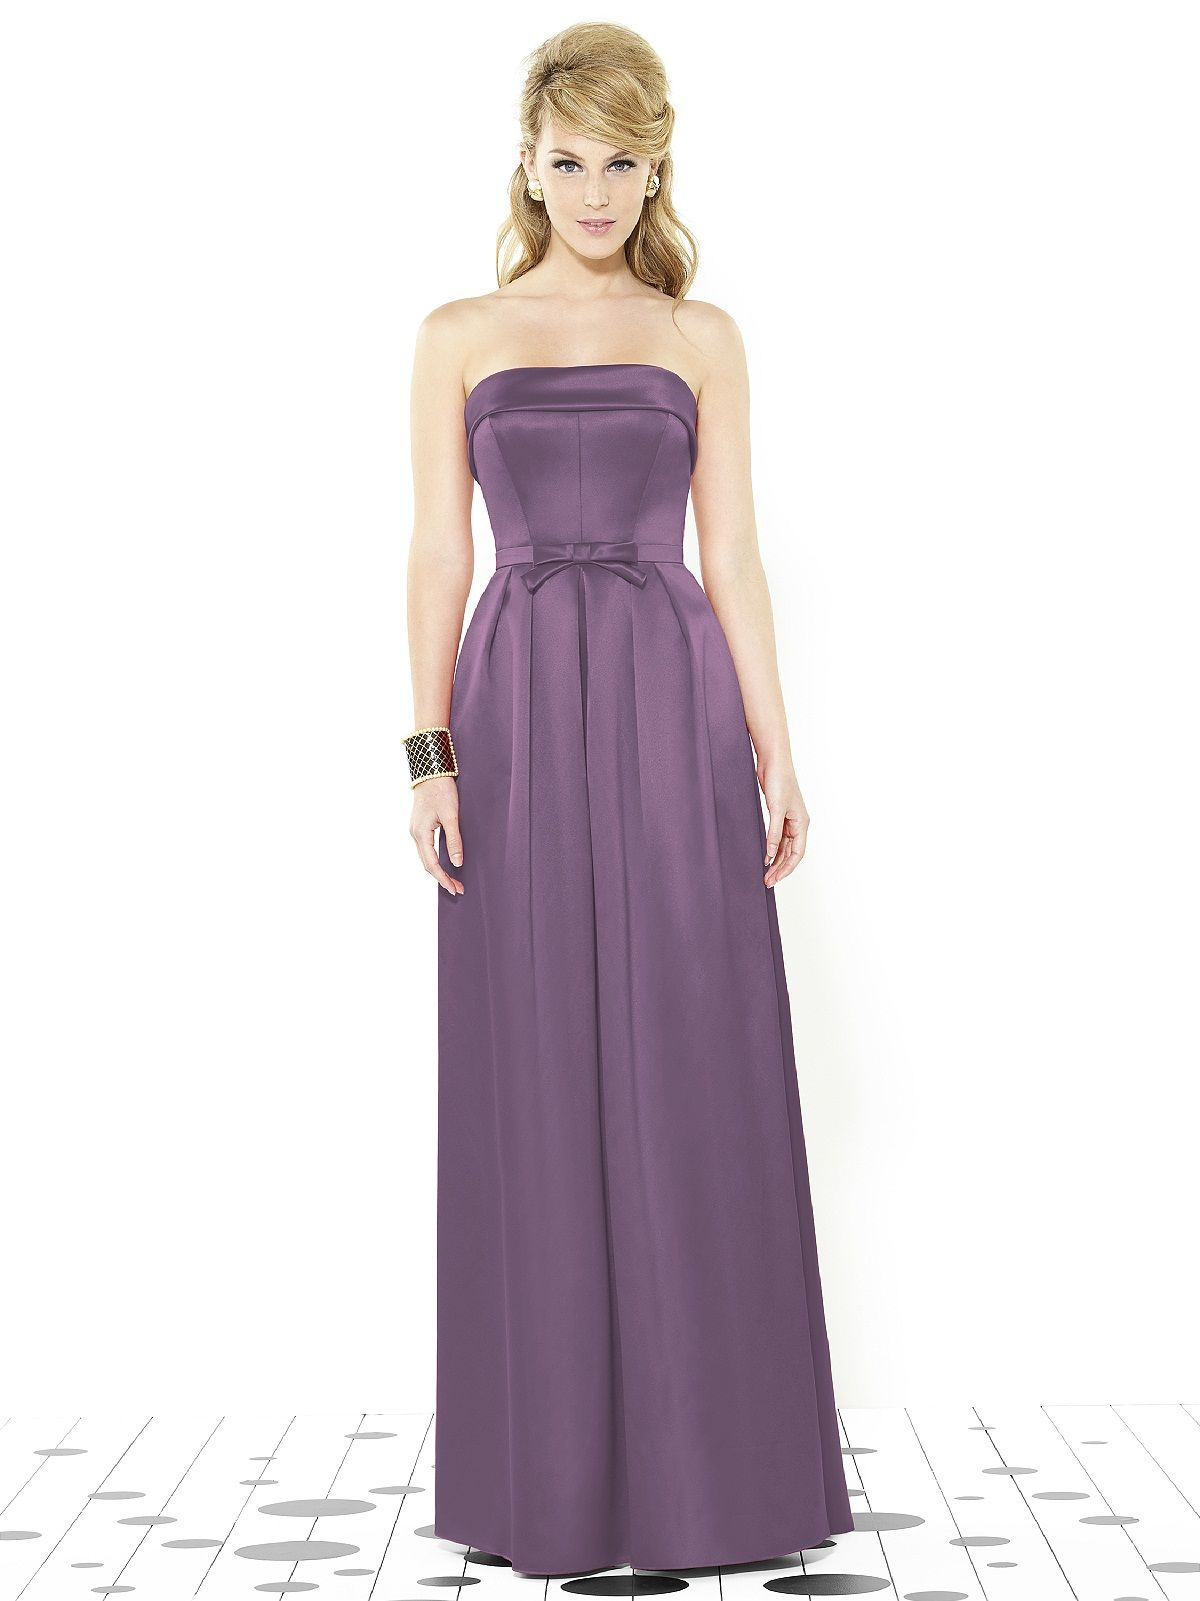 After Six Bridesmaids Style 6720 http://www.dessy.com/dresses/bridesmaid/6720/